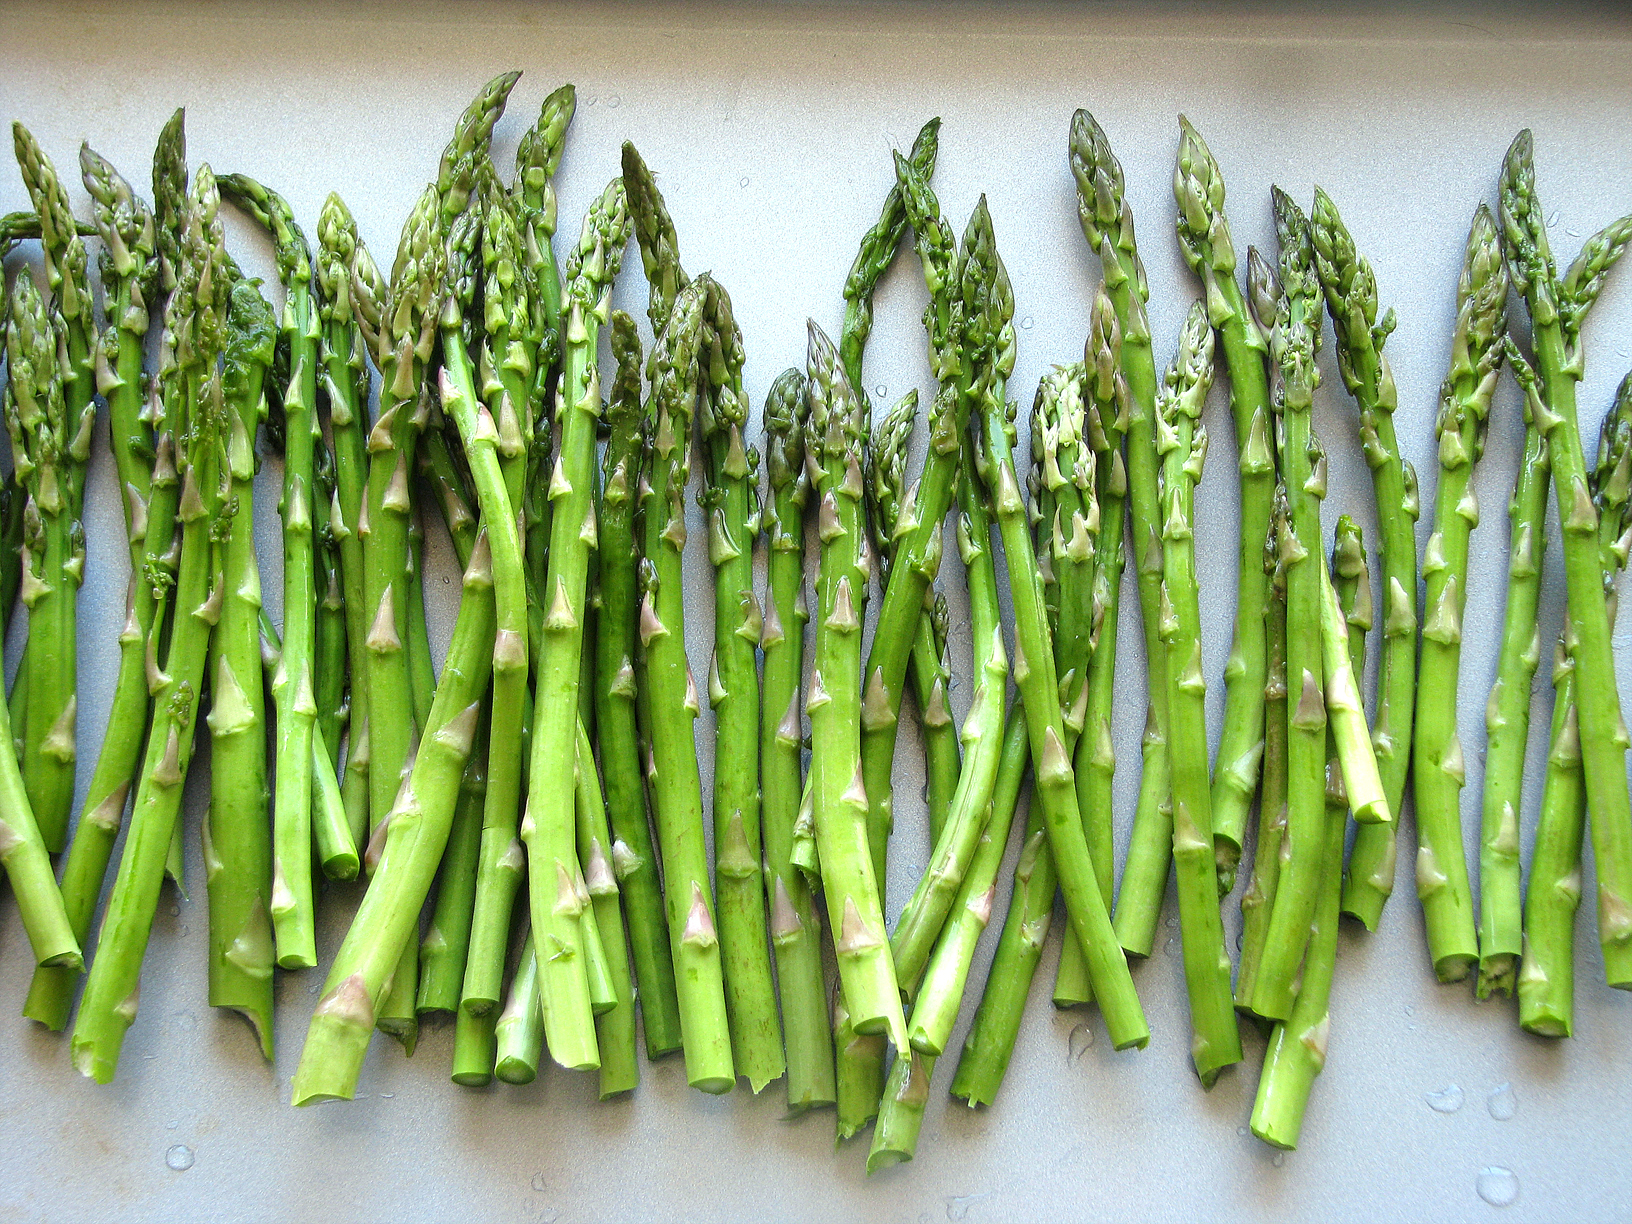 This is asparagus. Don't bring this.